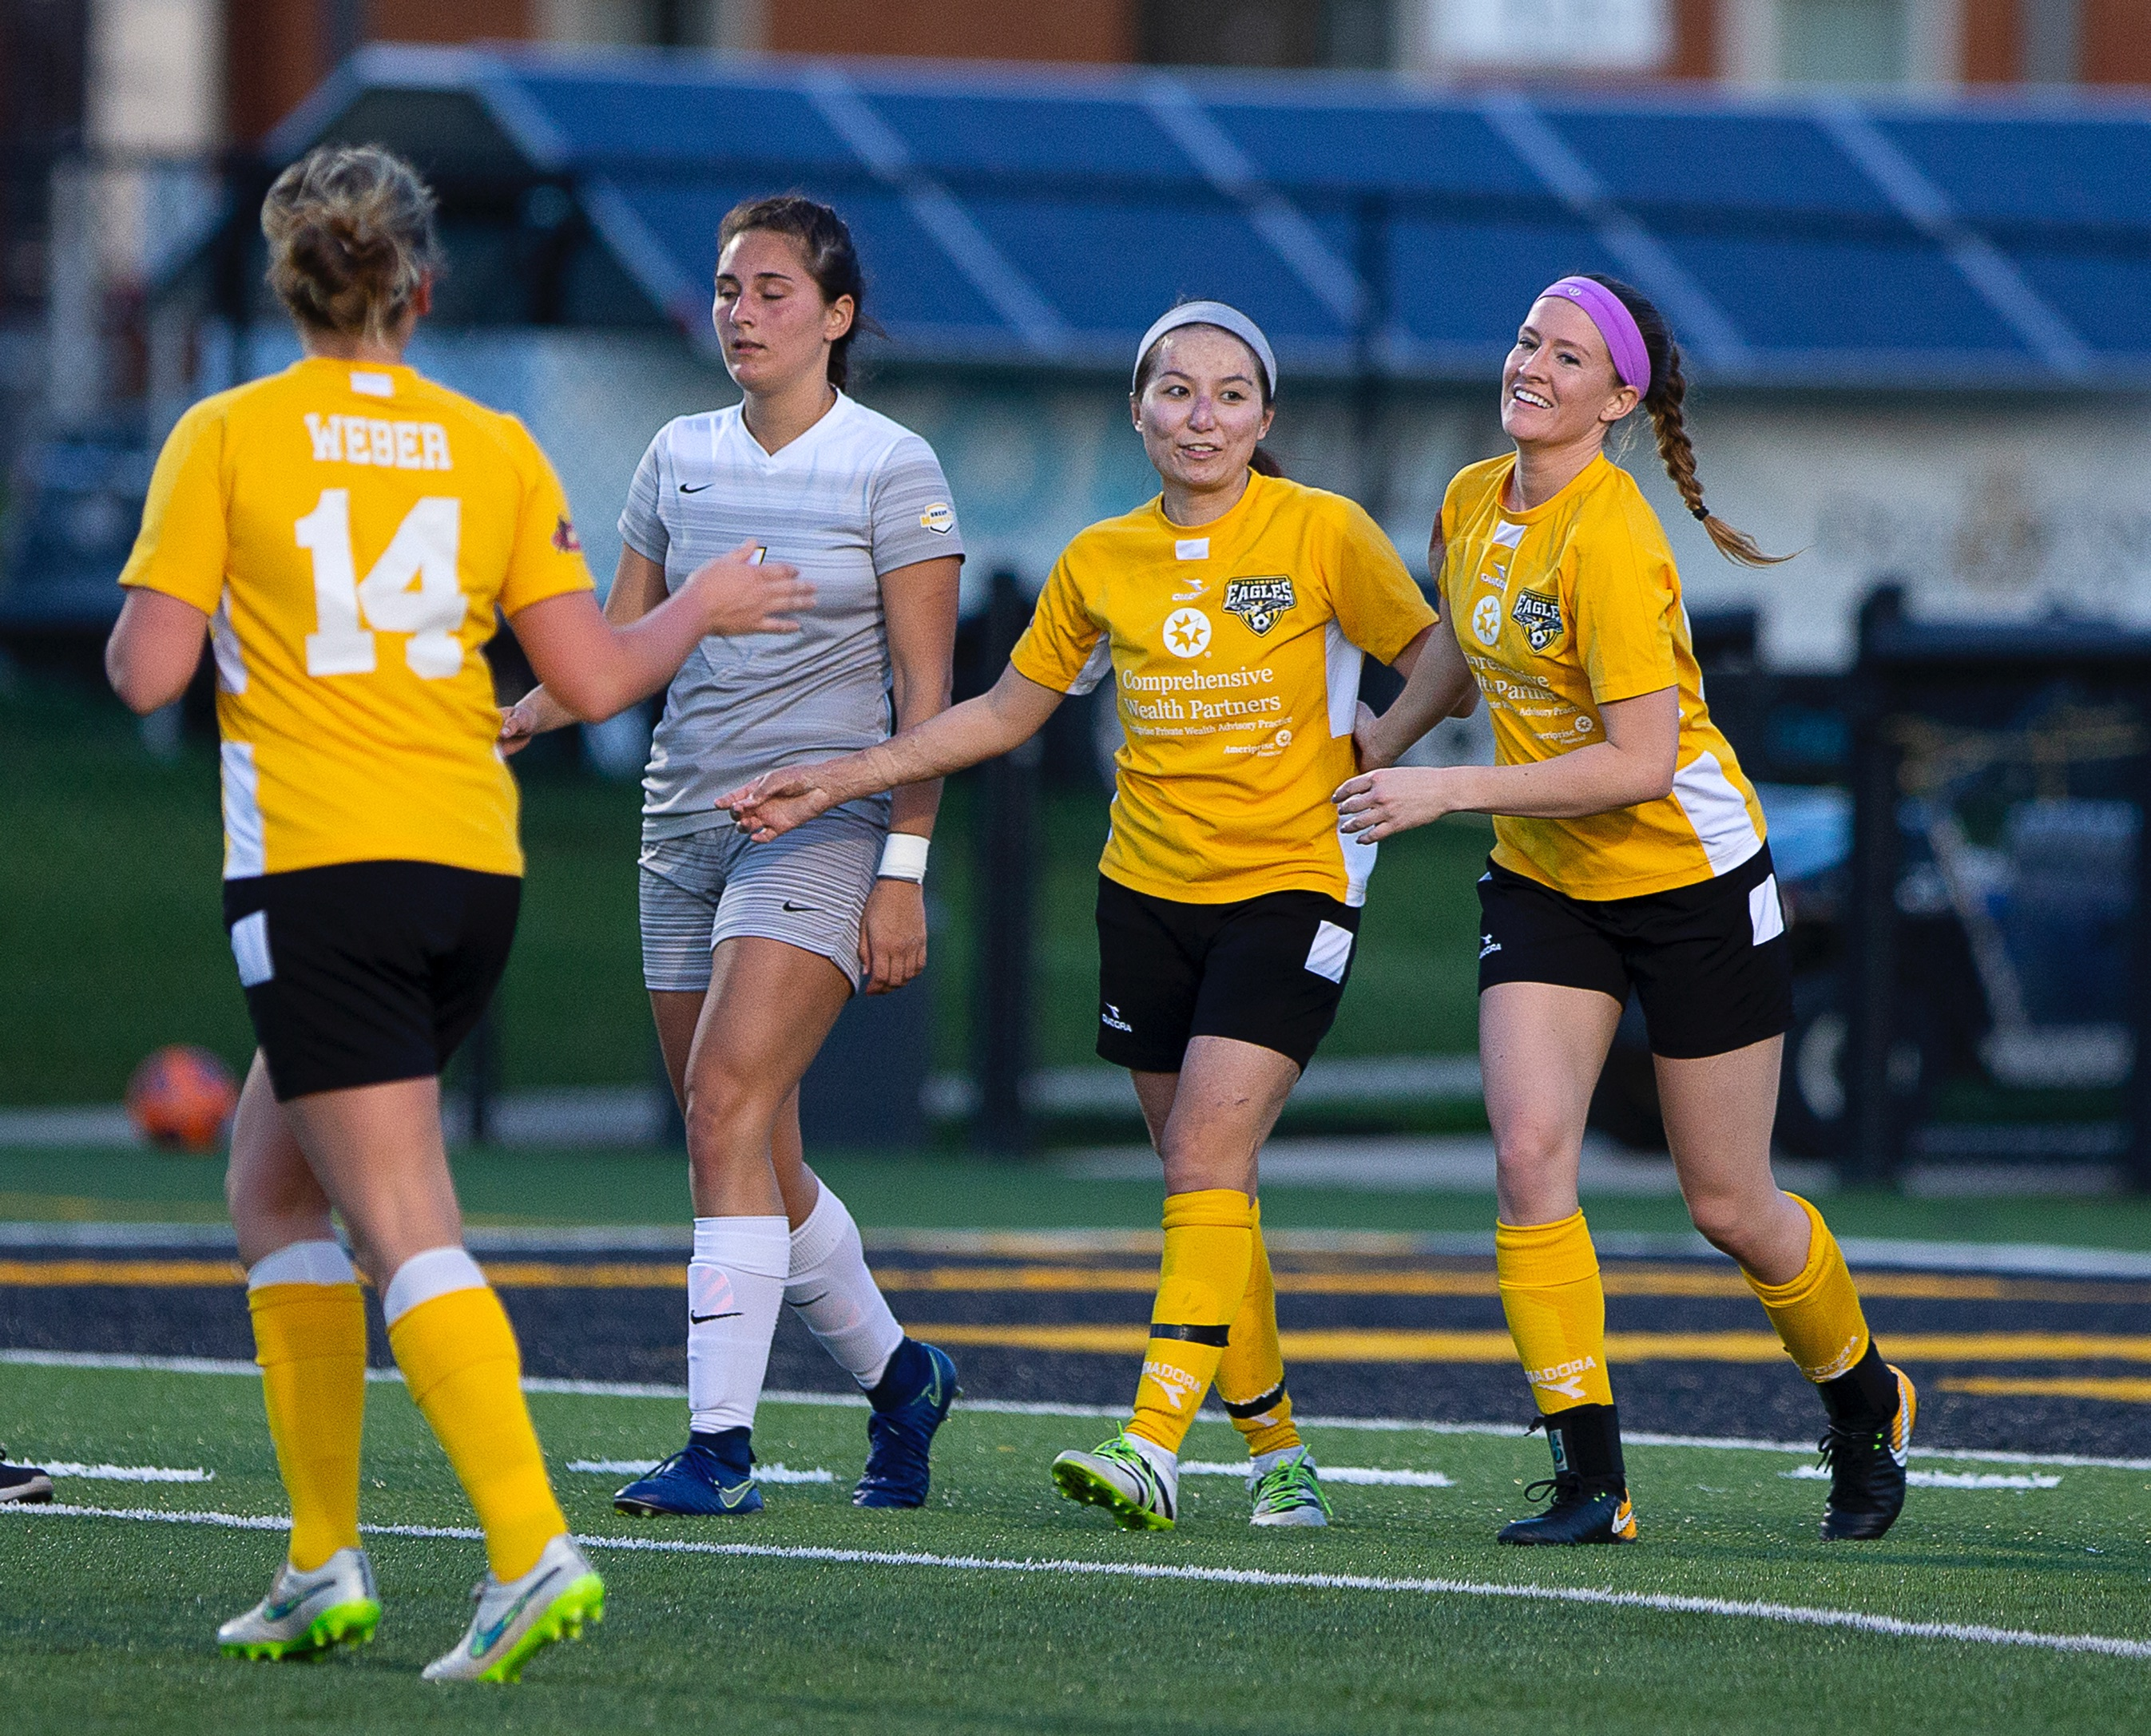 Rachel MacLeod (right) and Lisa Nouanesengsy celebrate MacLeod's goal against Ohio Dominican University | Daniel Herlensky